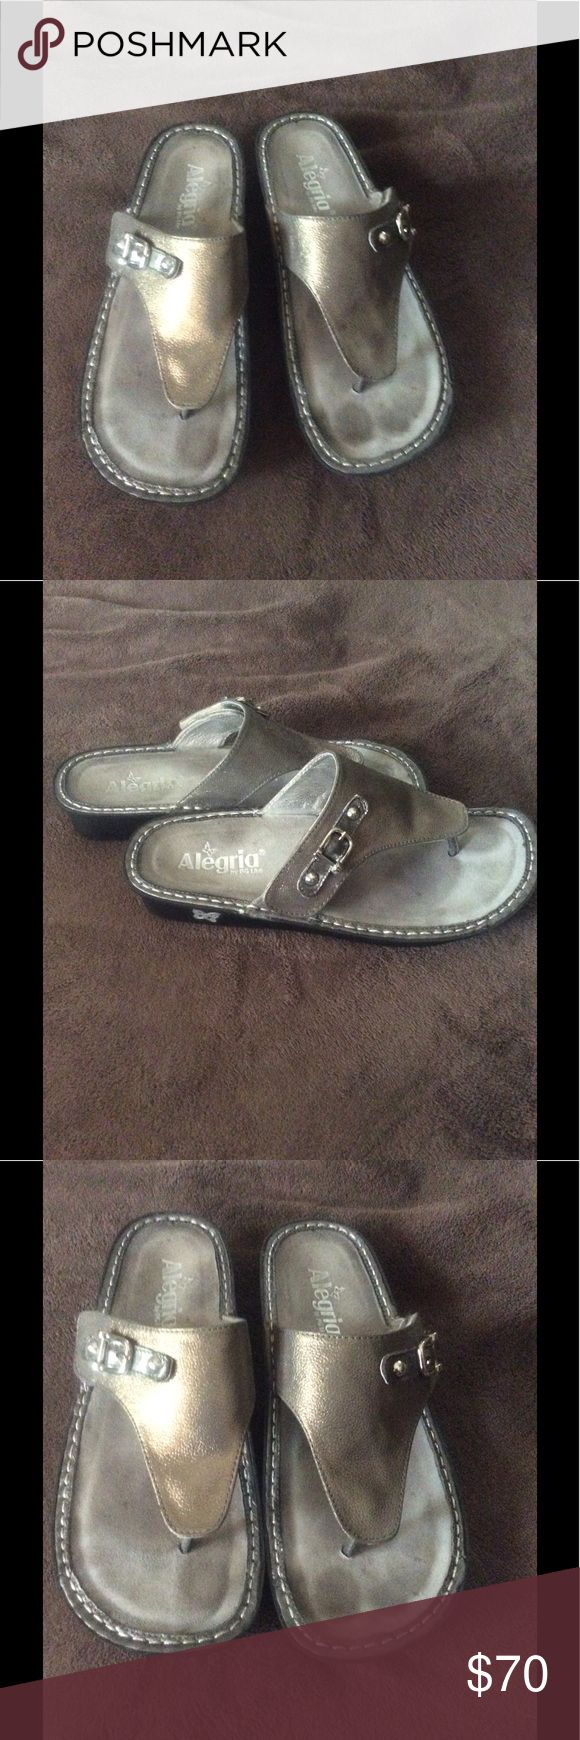 Alegria sandals in metallic pewter! These loved sandals have tons of life left! Beautiful pewter in color and so comfy! 🌸 size 40 Alegria Shoes Sandals